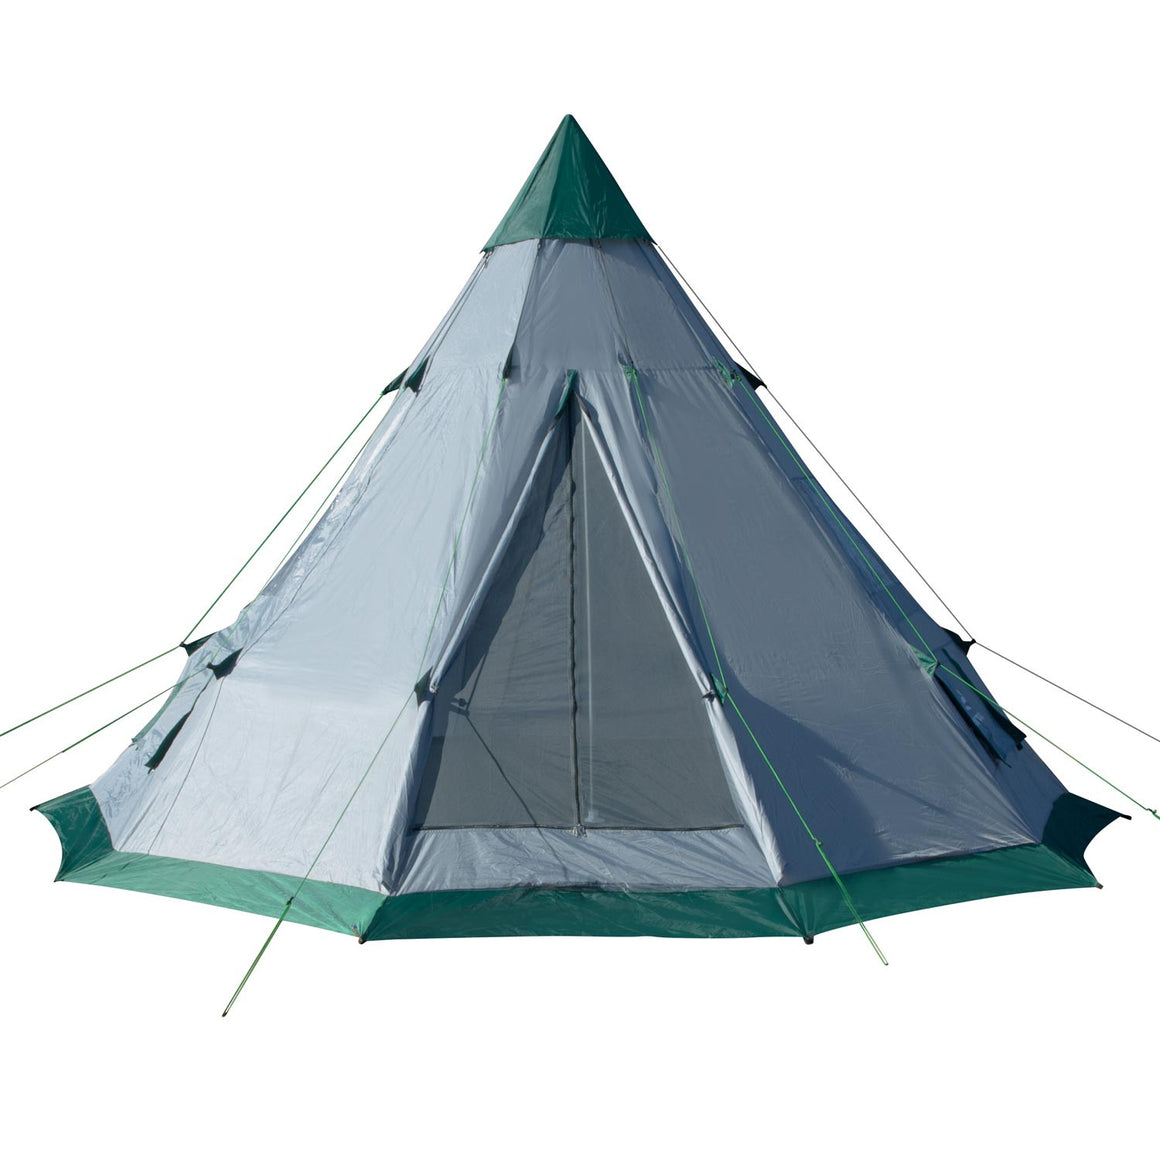 6-7 PERSON FAMILY TEEPEE TENT  sc 1 th 225 & Winterial.com - Outdoor Camping and Backpacking Gear and Equipment